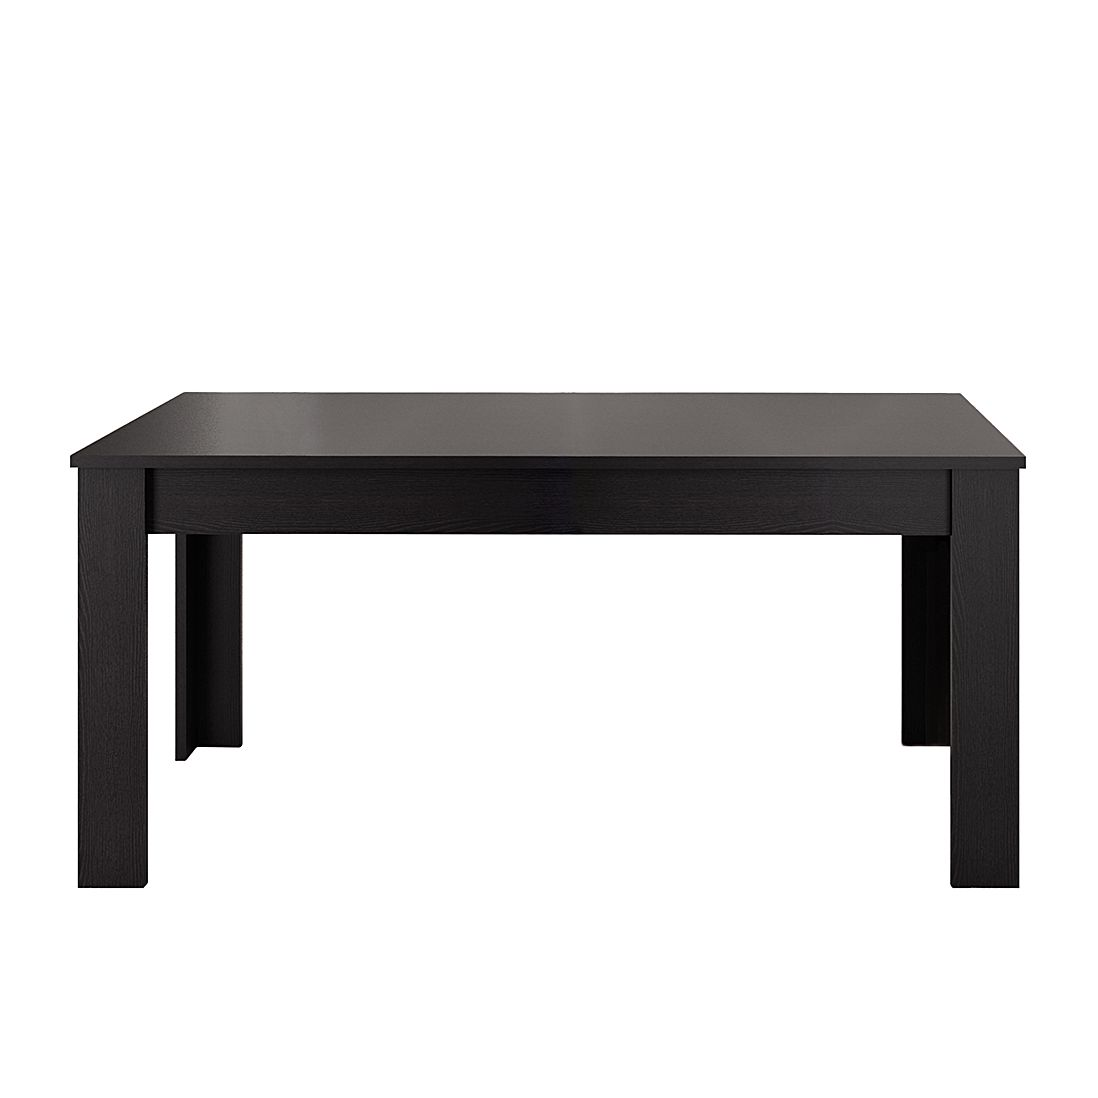 greemotion 416505 toulouse table suspendue pour balcon comparer les prix et promo. Black Bedroom Furniture Sets. Home Design Ideas